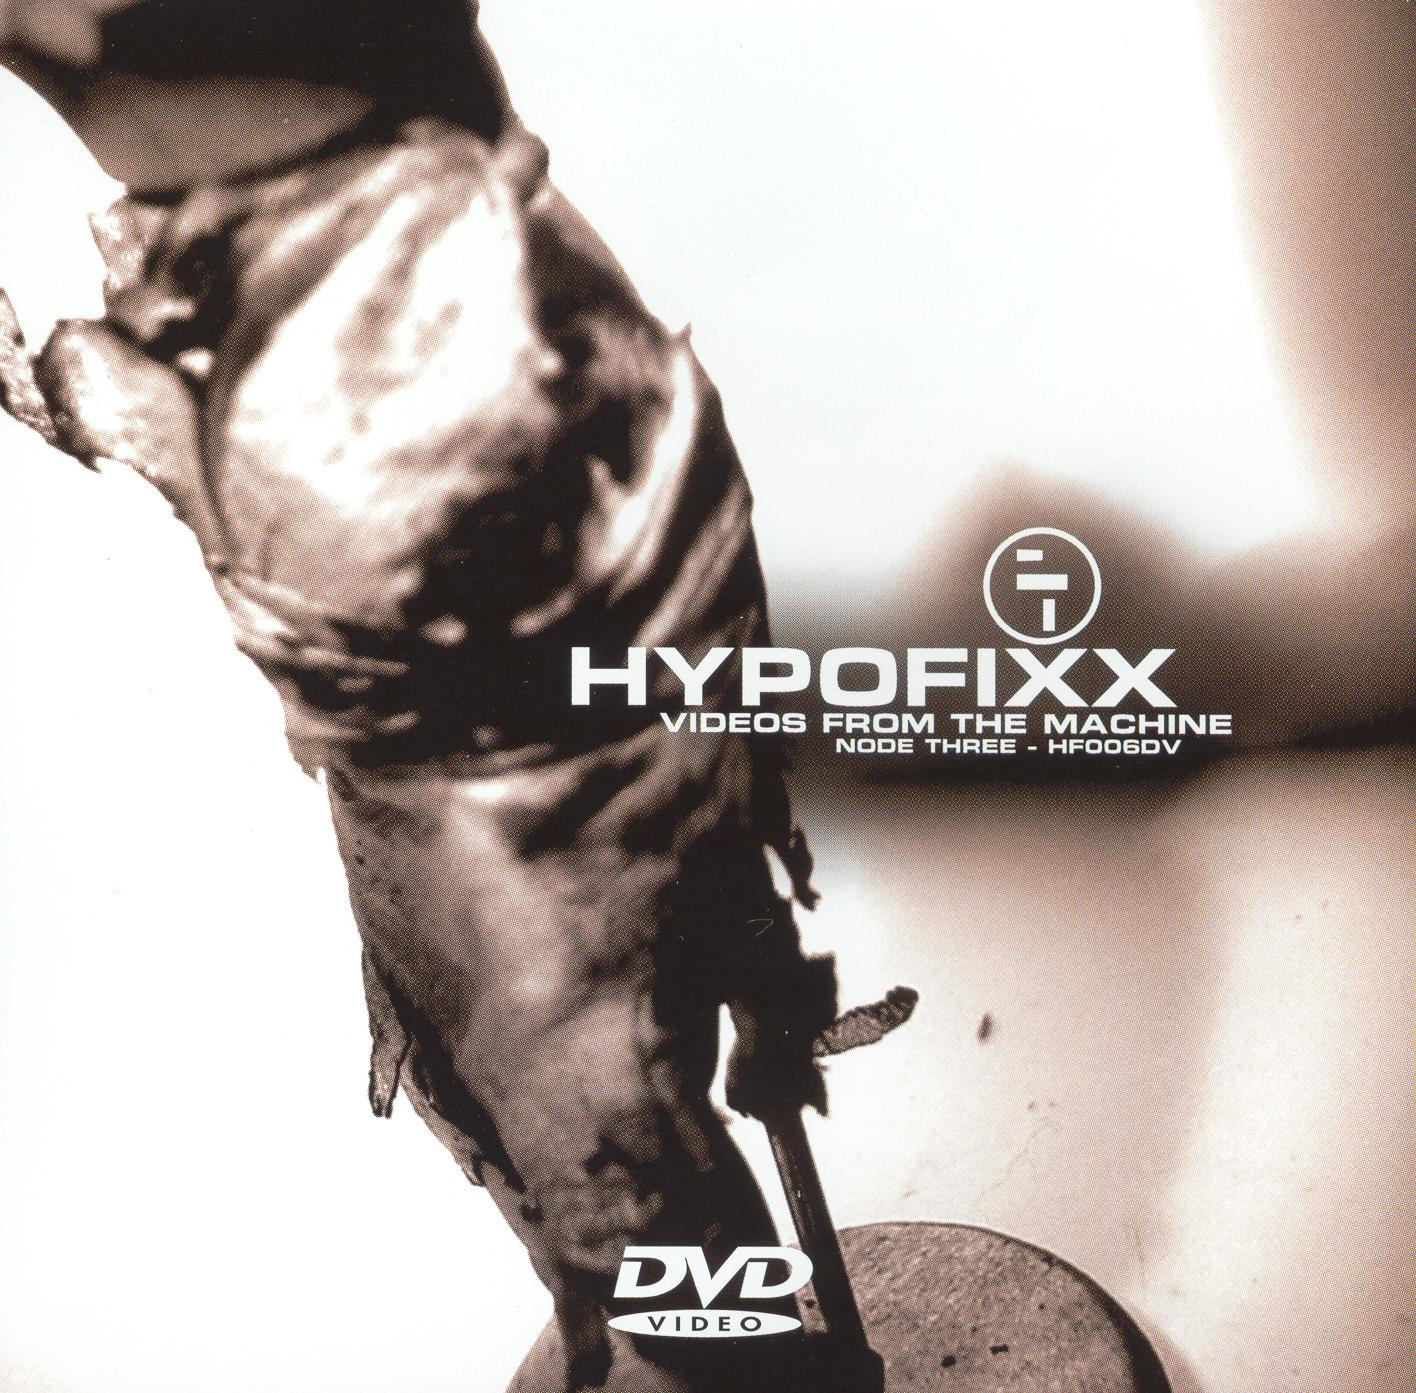 HypoFixx: Videos From the Machine